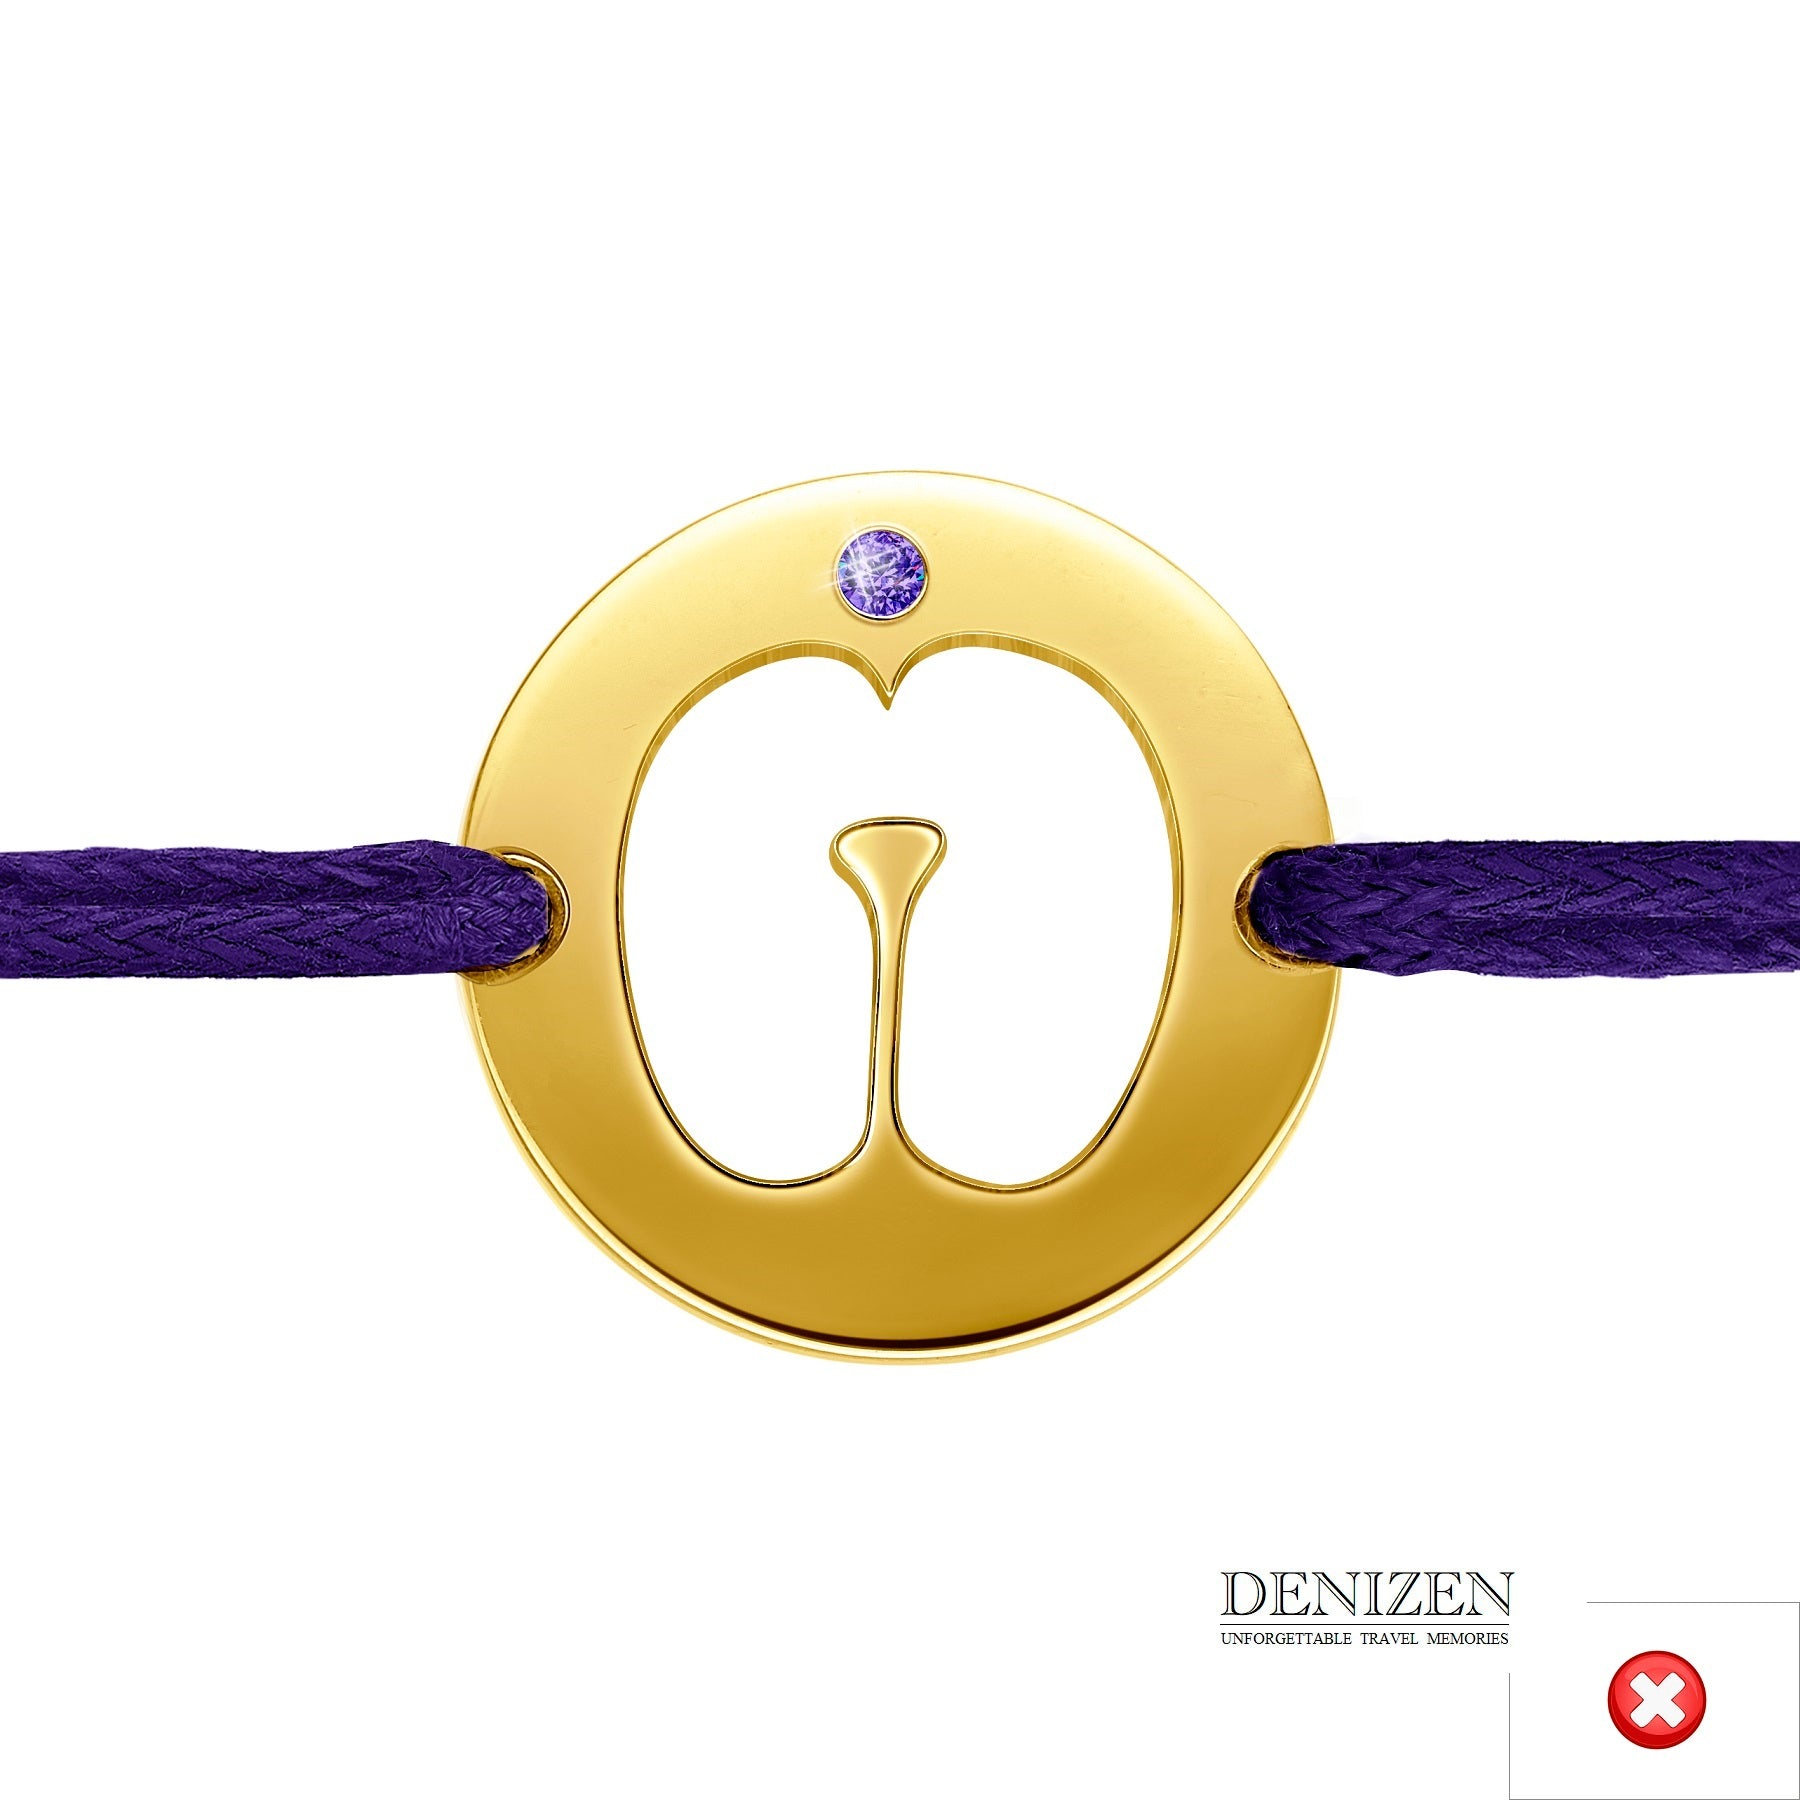 DENIZEN Bracelet of Coco de mer Seychelles in purple color #107